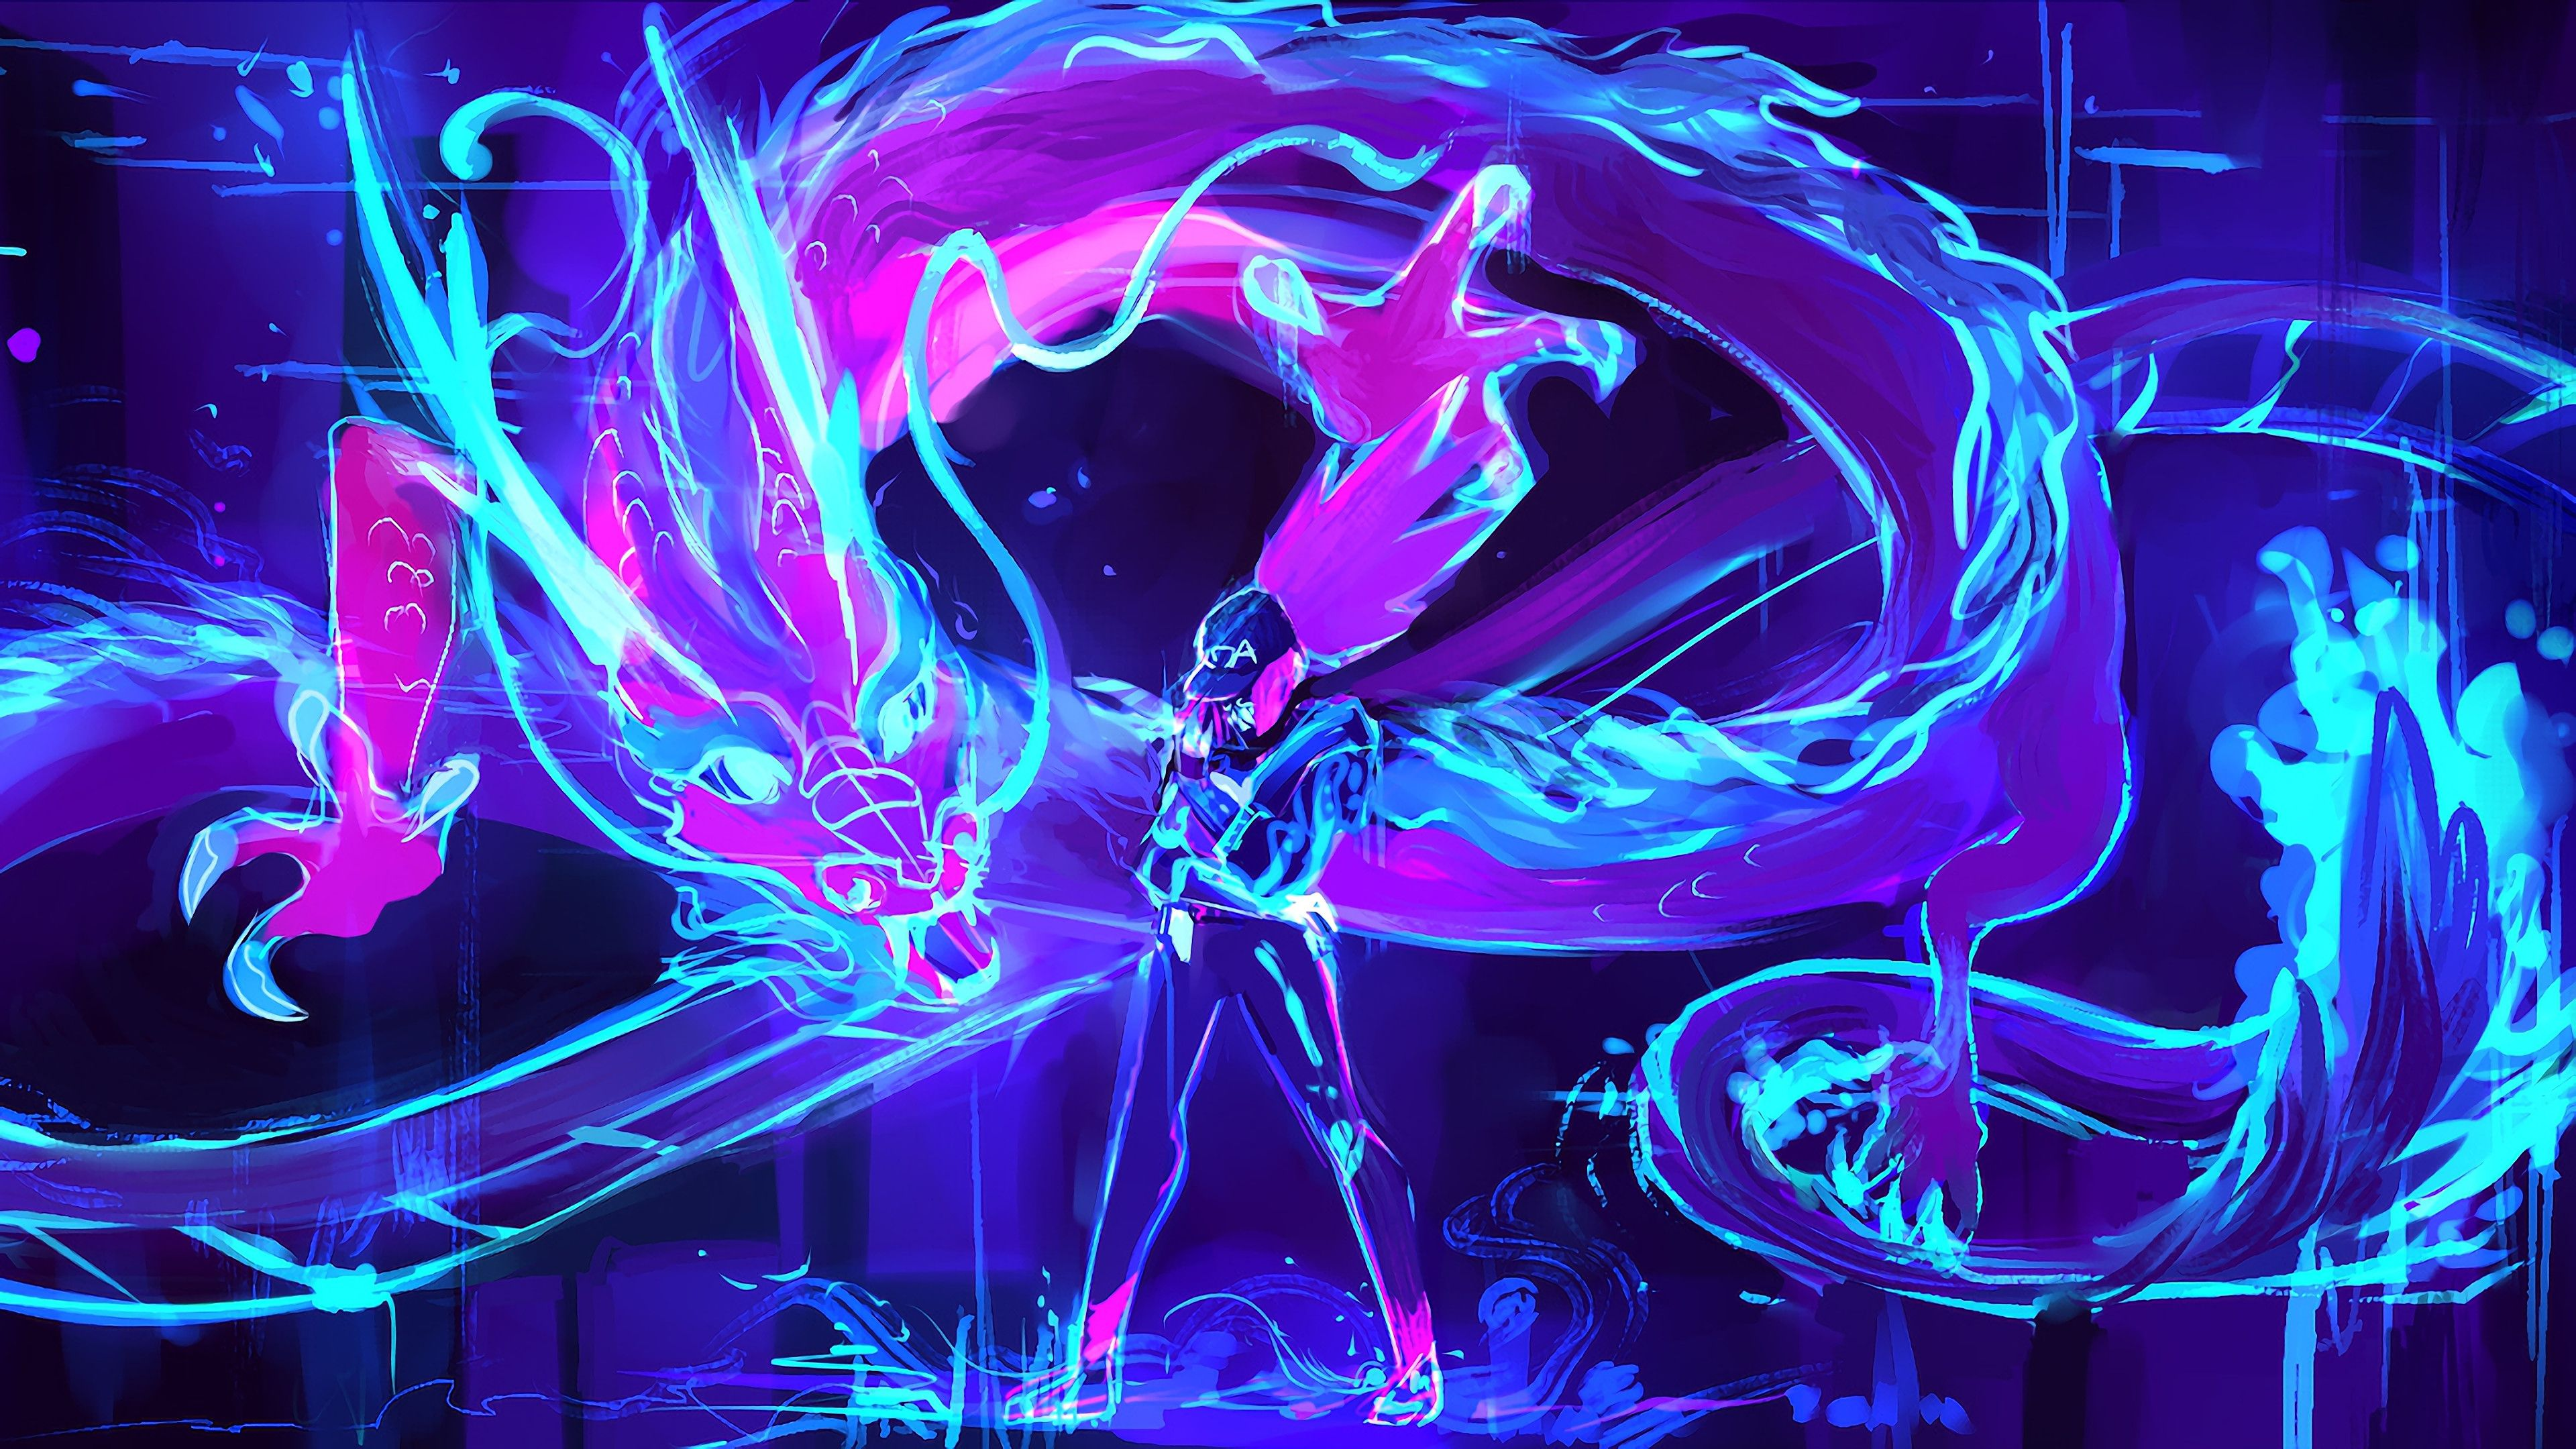 Blue Neon Dragon Wallpapers - Wallpaper Cave